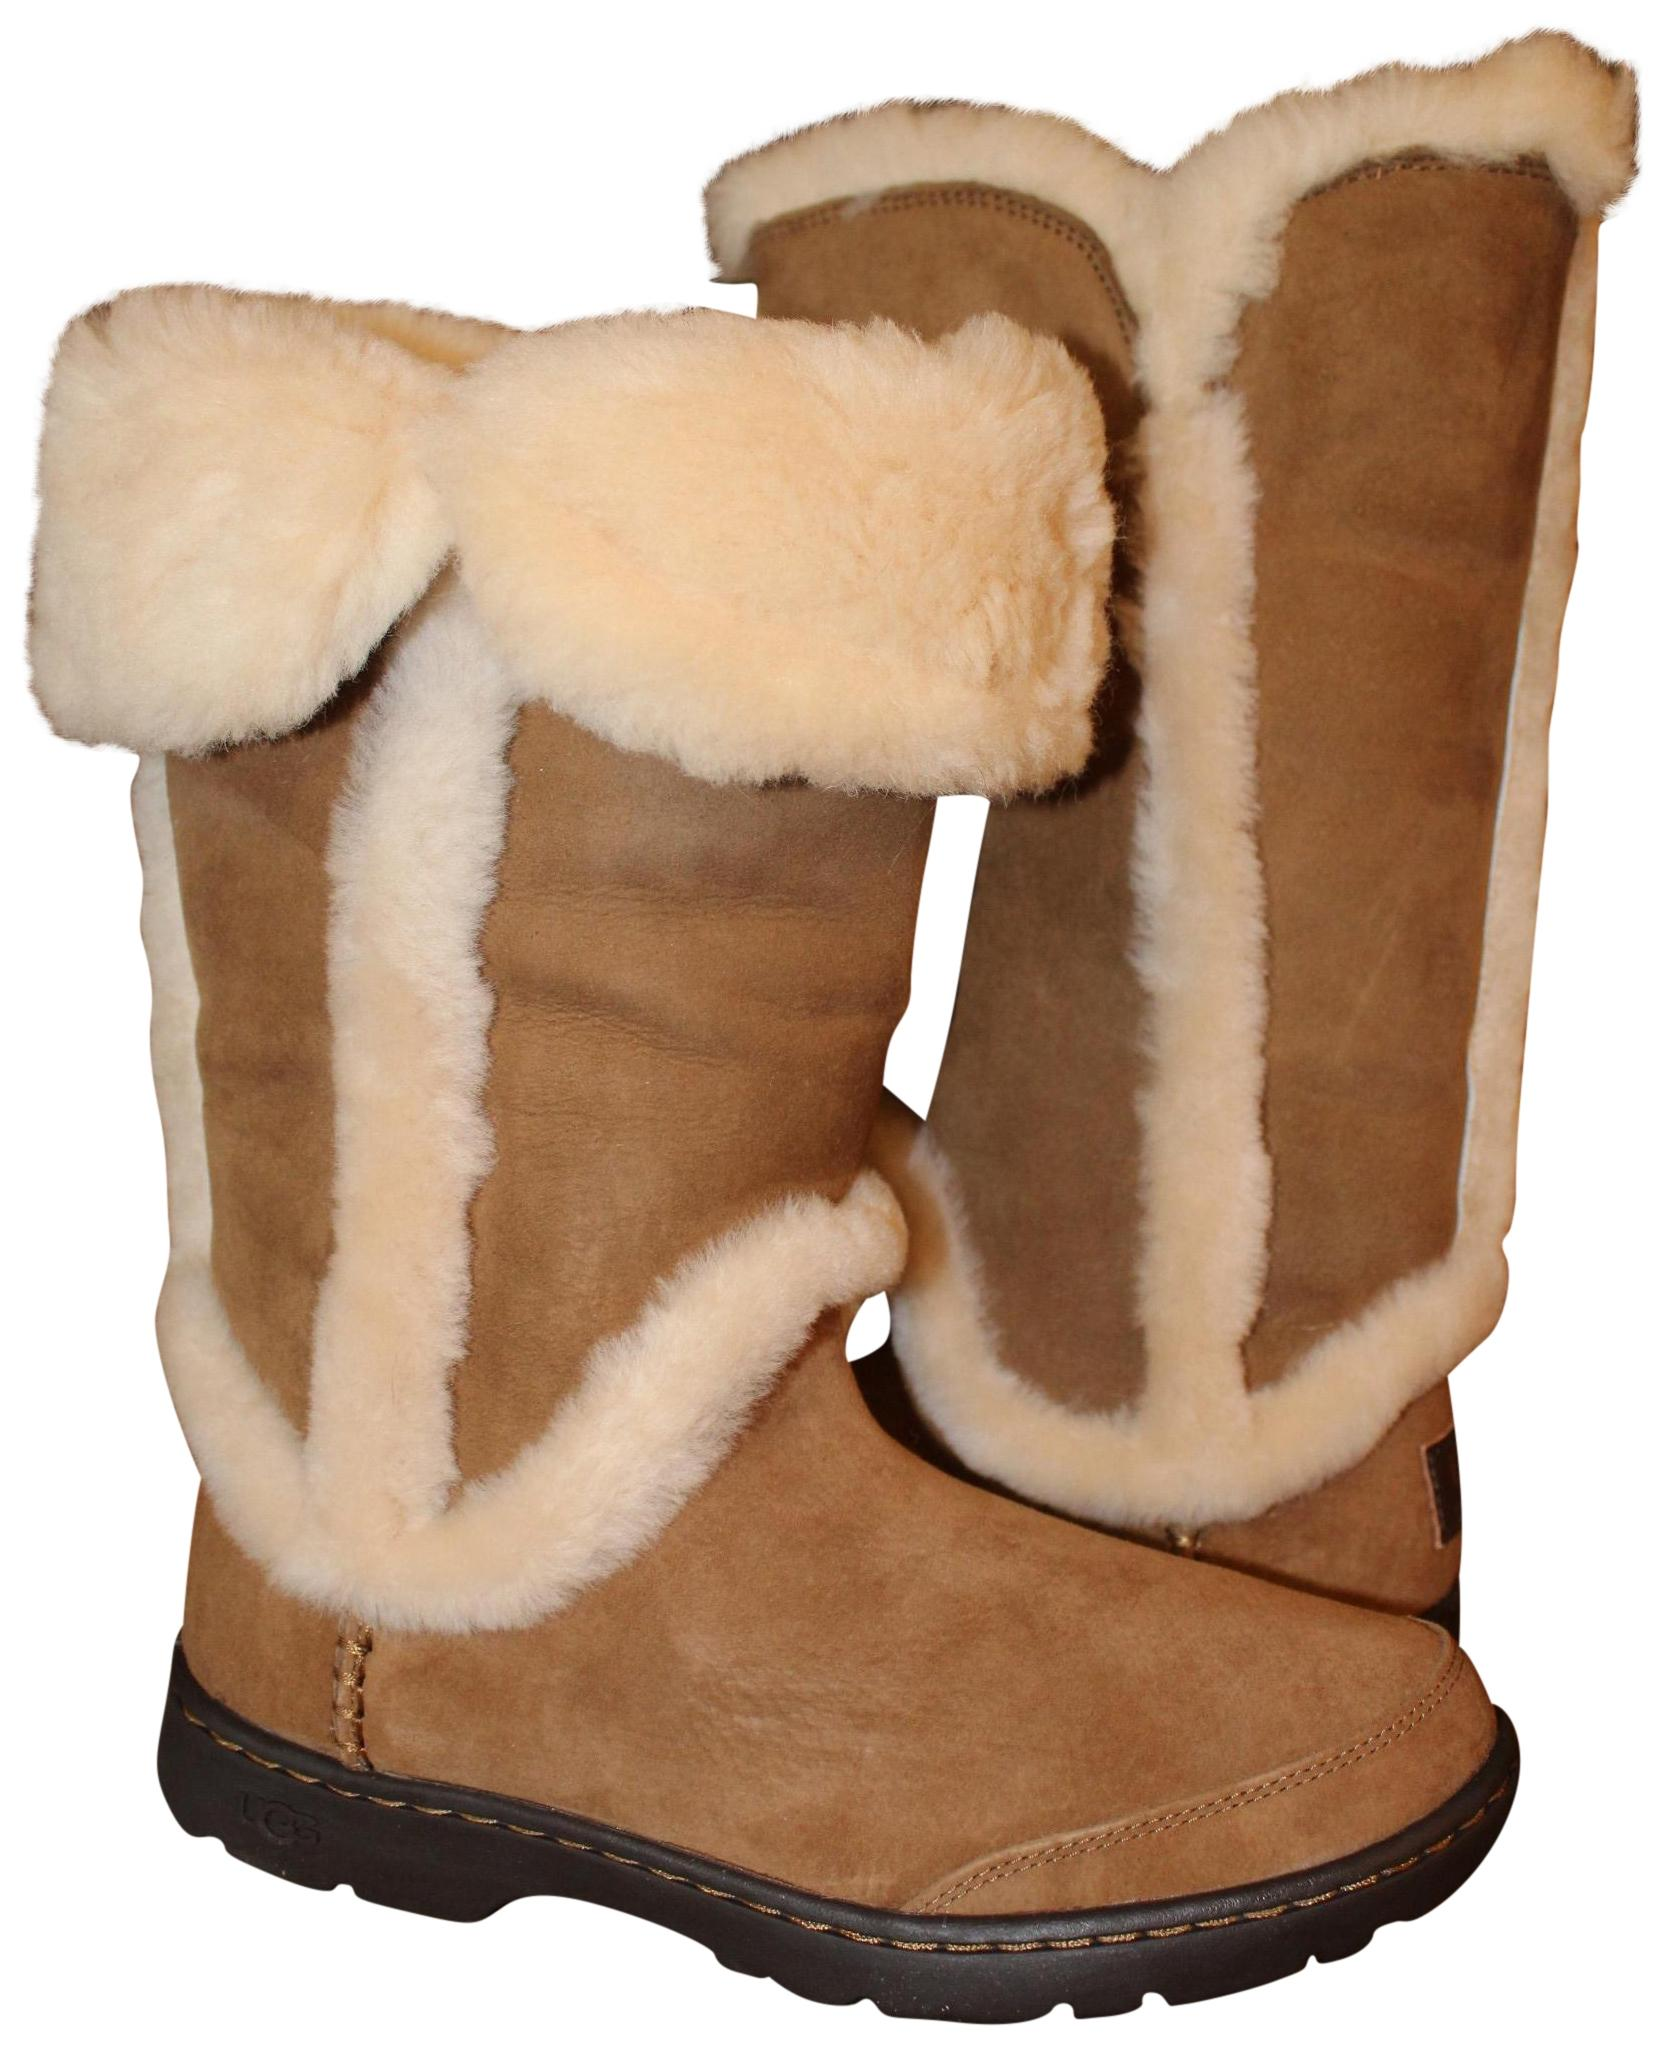 buy sale online cheap price buy discount UGG Australia Suede Shearling Boots perfect cheap price WmdrKD